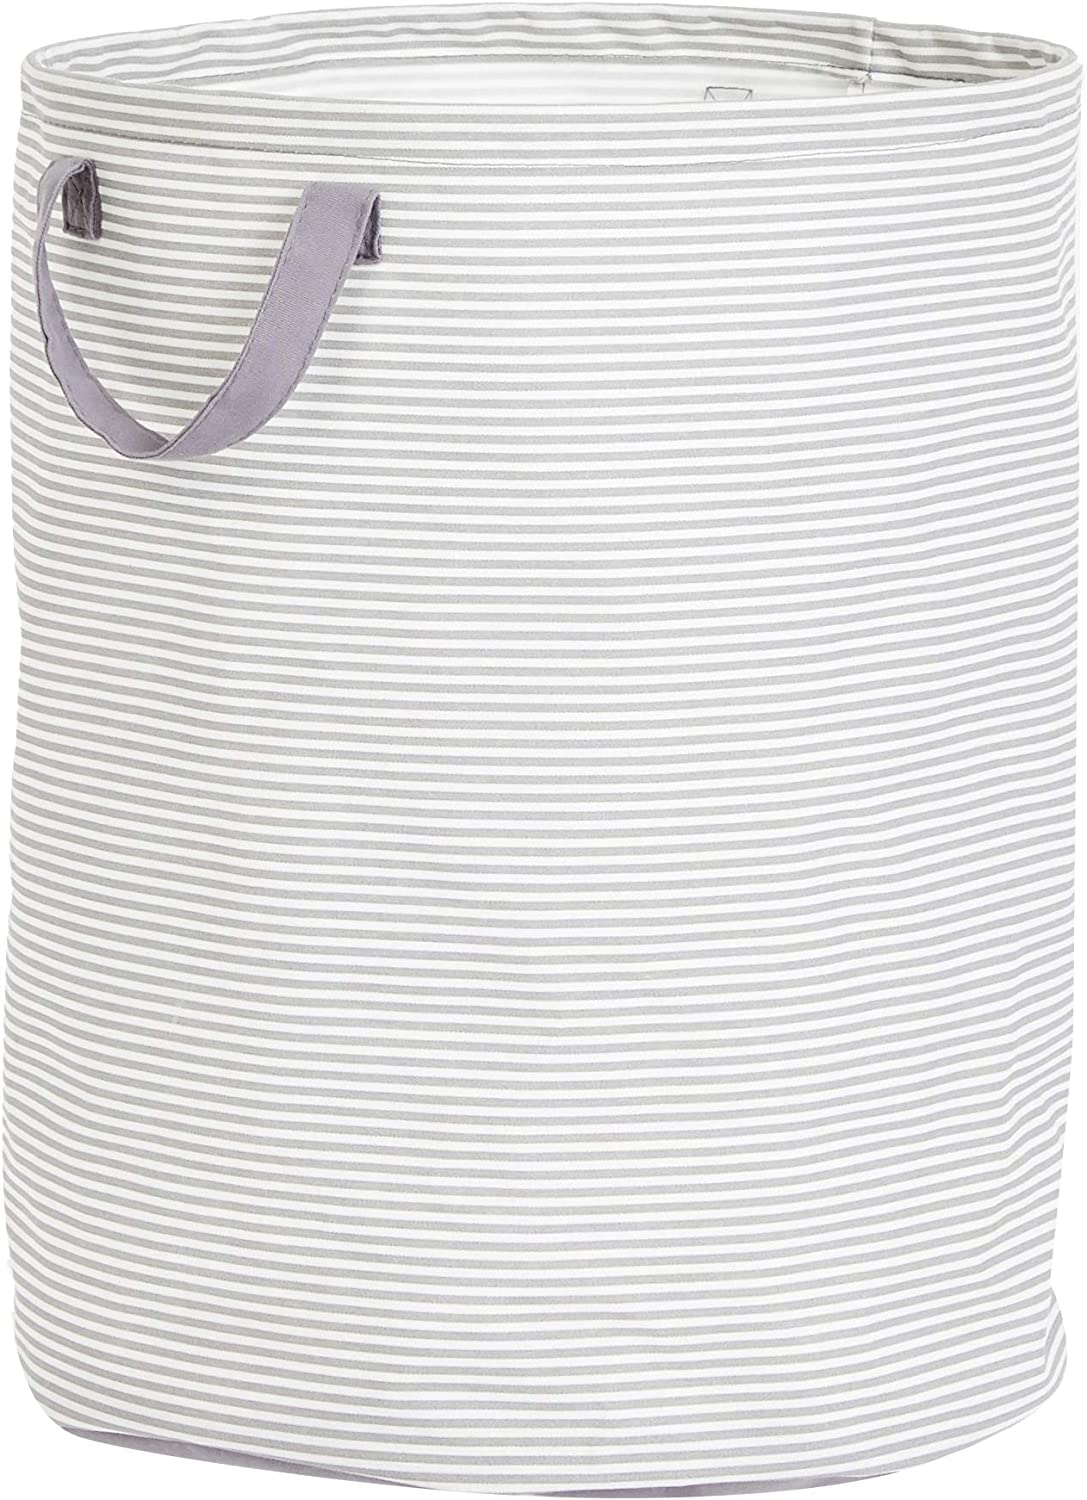 AmazonBasics Large Round Laundry Hamper Storage Basket with Handles, Striped